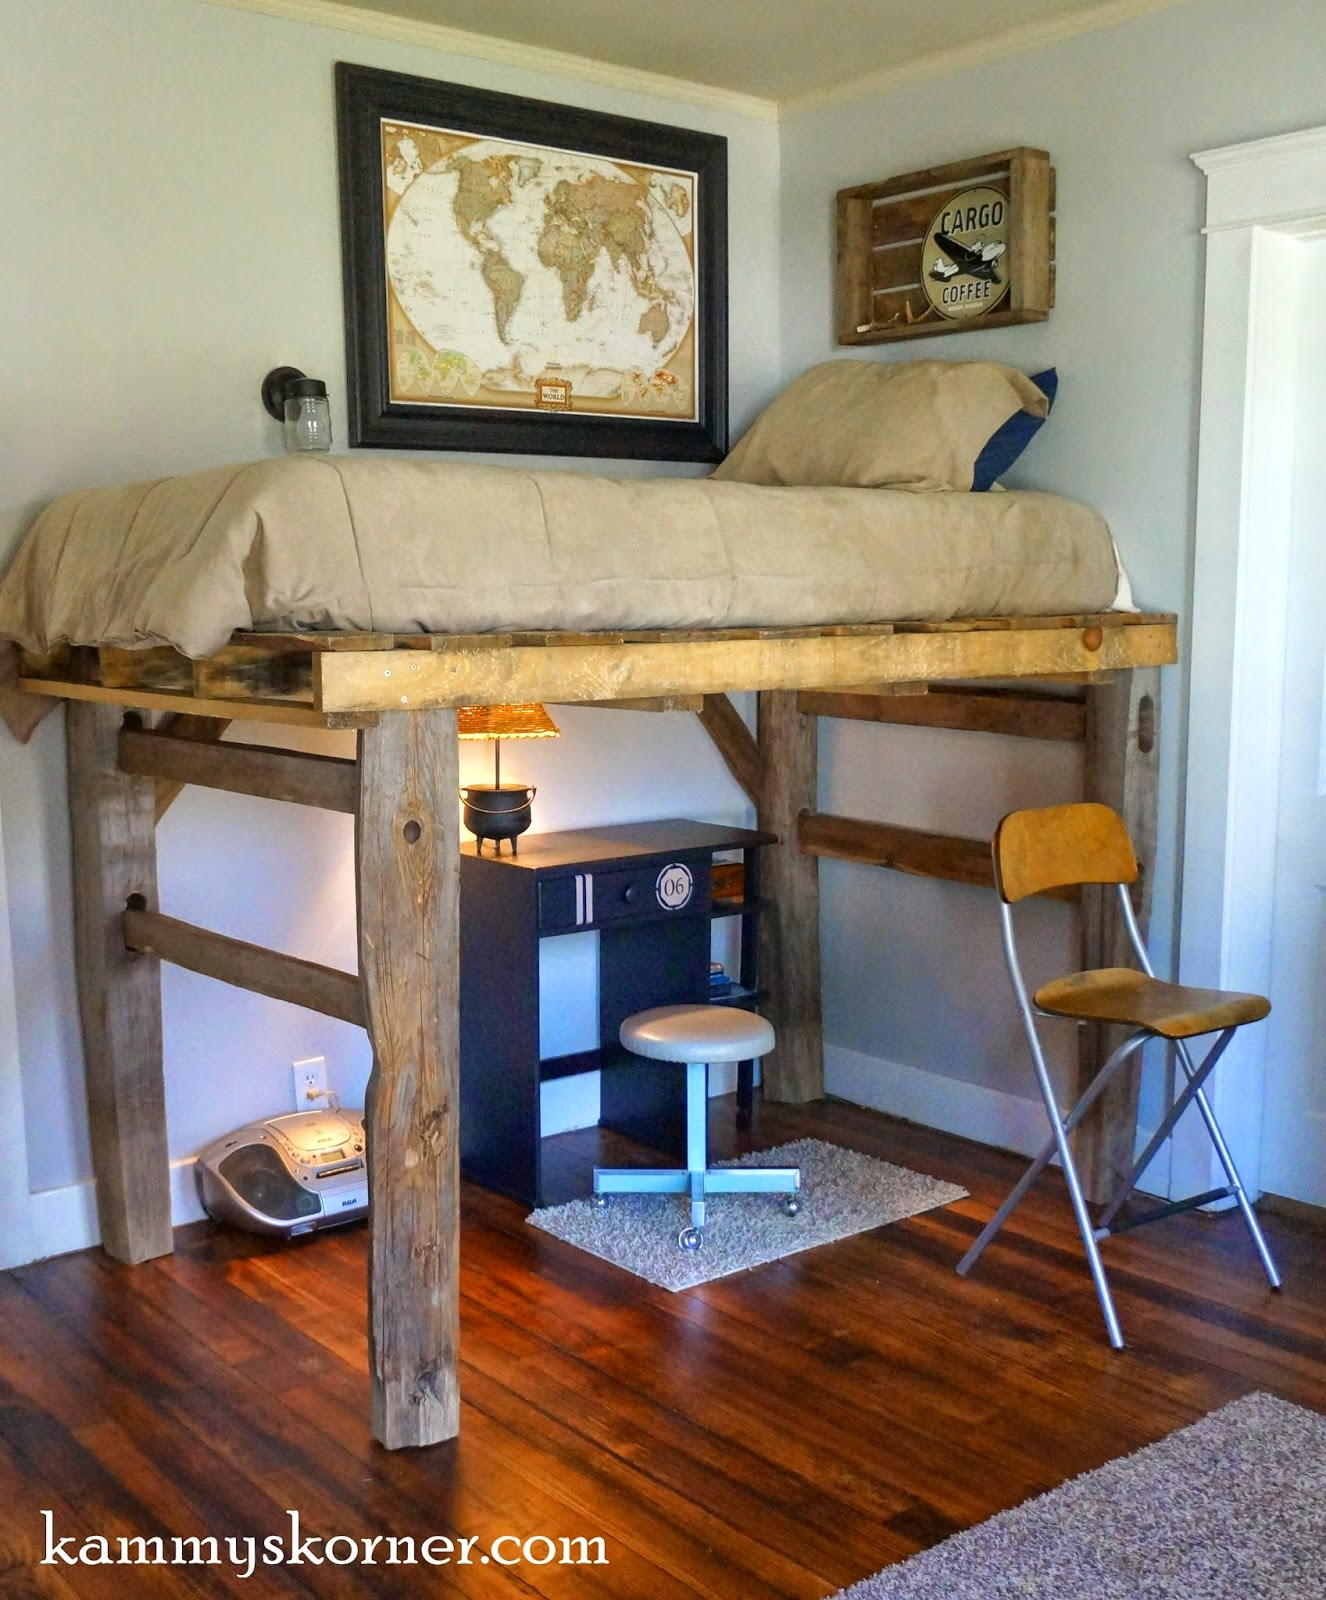 20 DIY Pallet Projects Worth Doing Yourself on Bedroom Pallet Ideas  id=52802